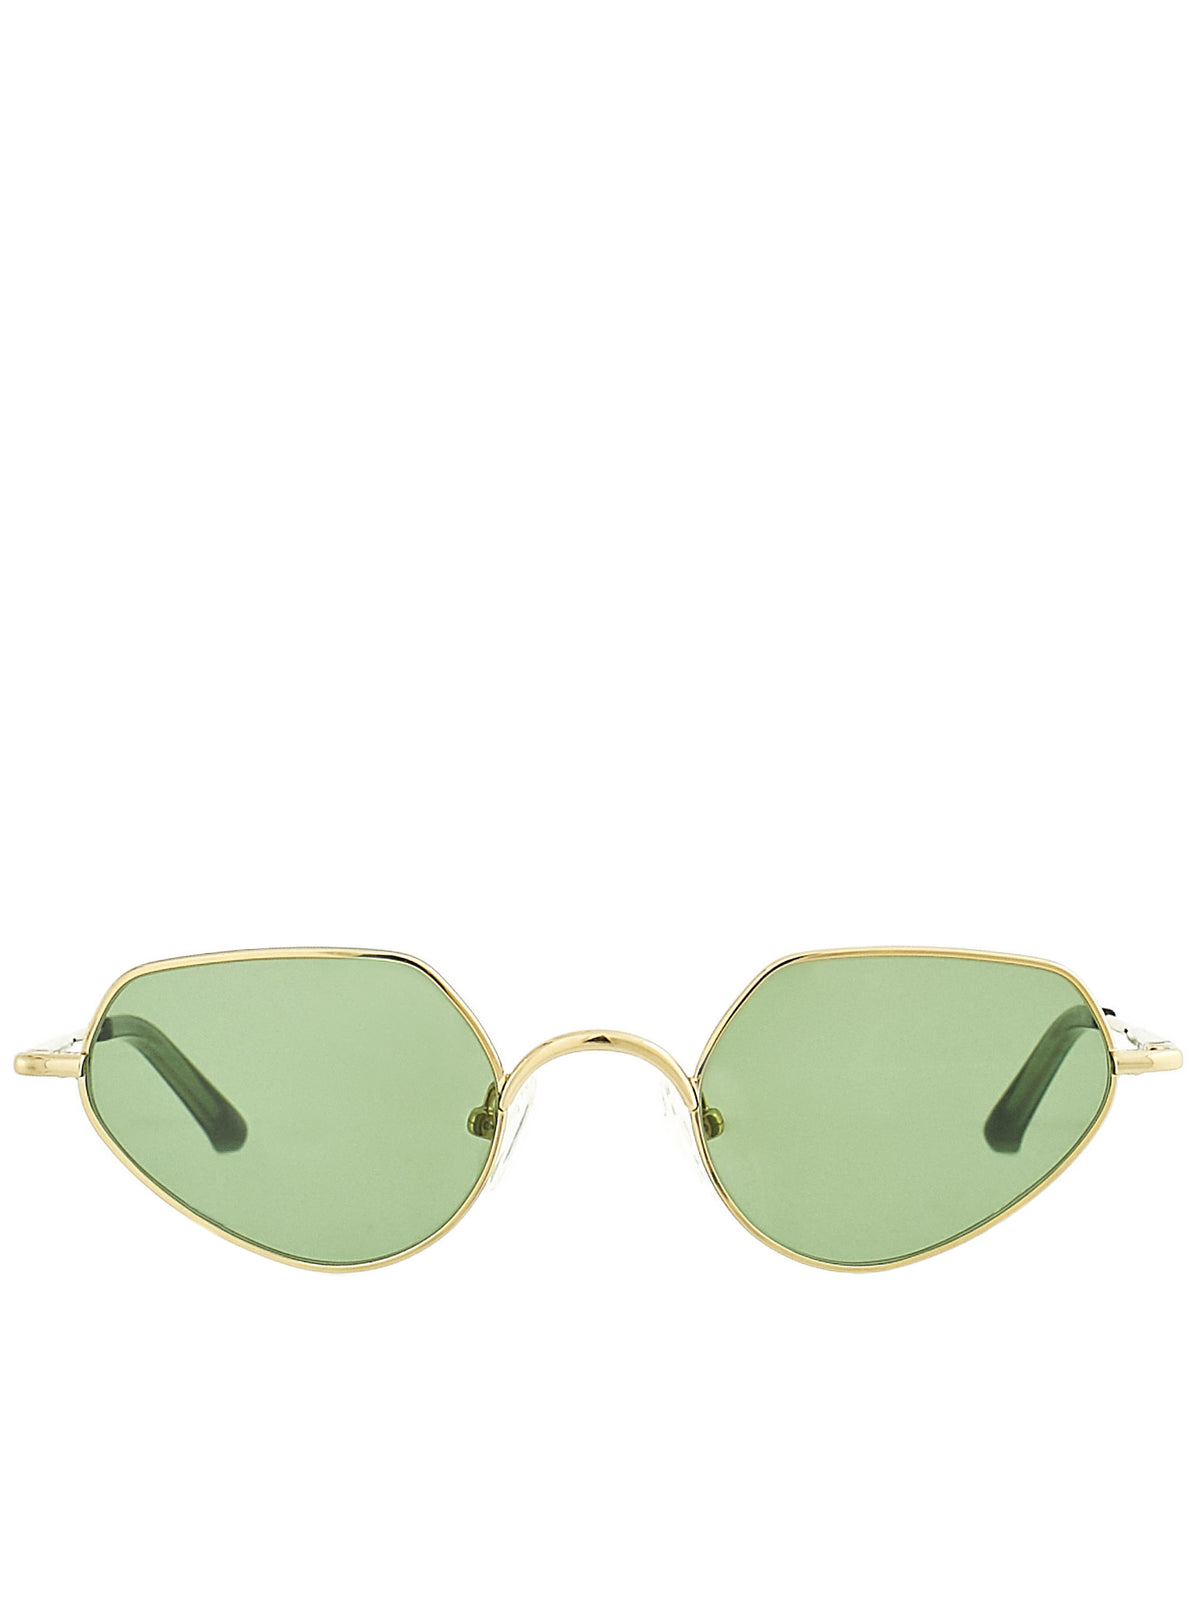 Cat Eye Sunglasses (DVN176C5SUN-YG-GREEN)